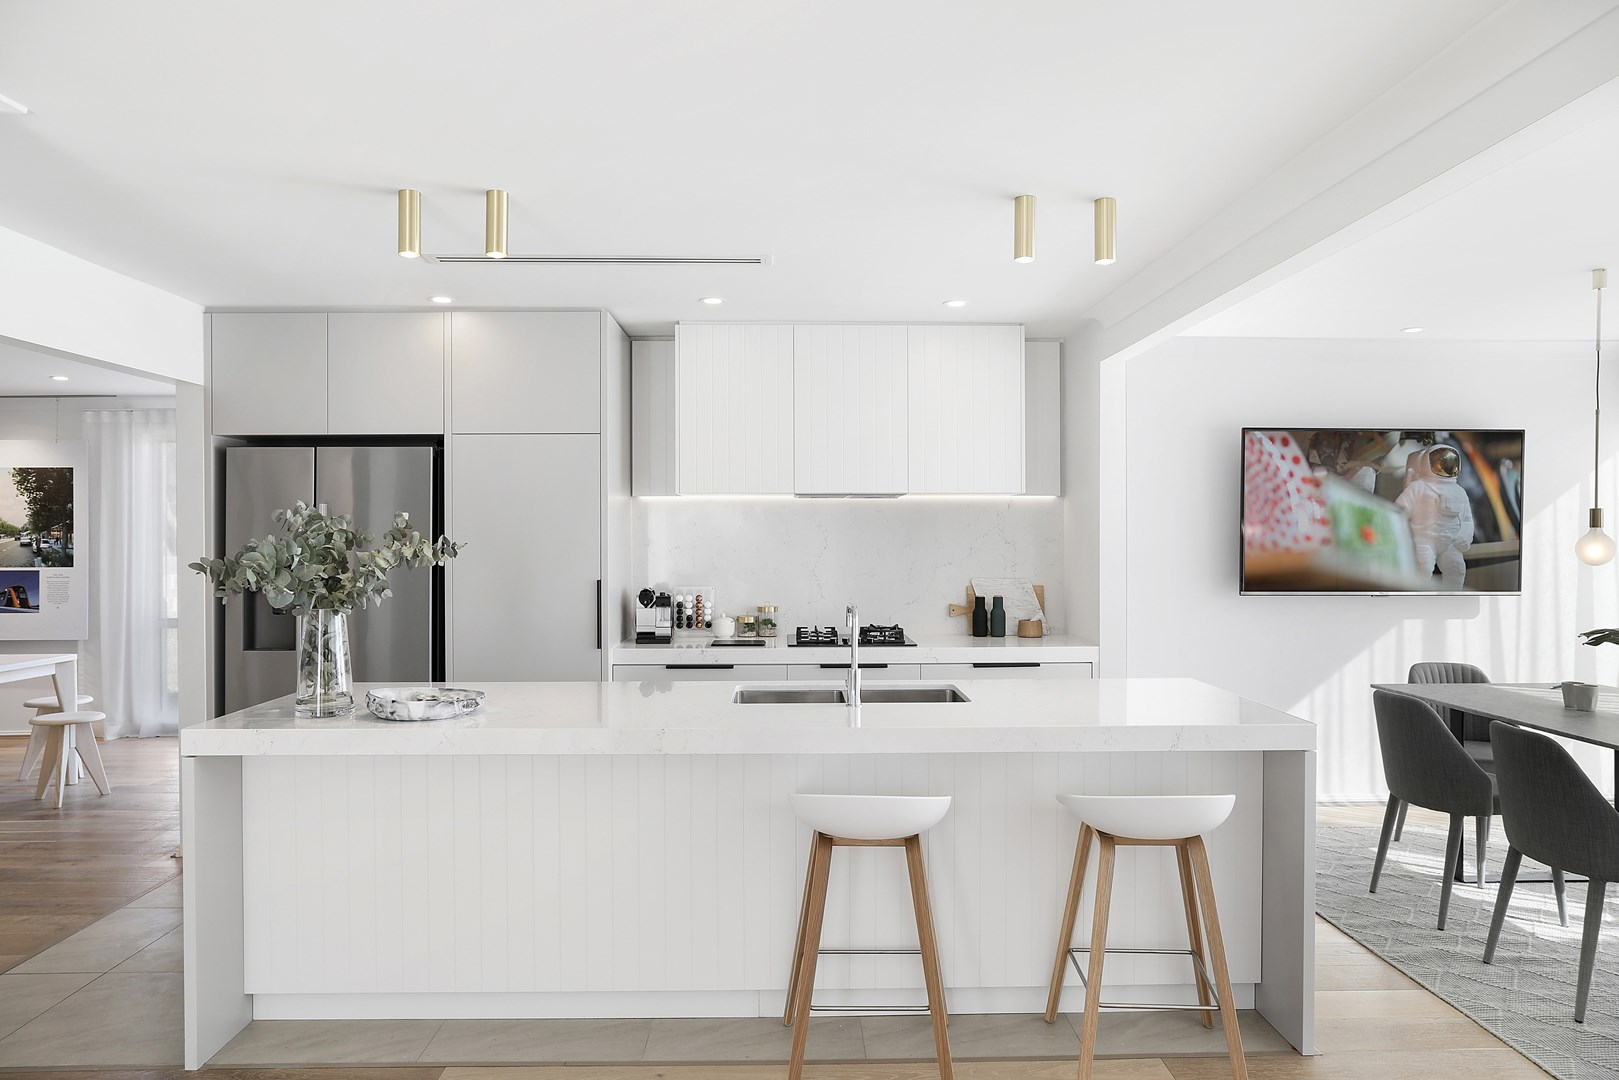 1 Bedroom/83 Balmoral Road, Kellyville NSW 2155 - Off The Plan ...